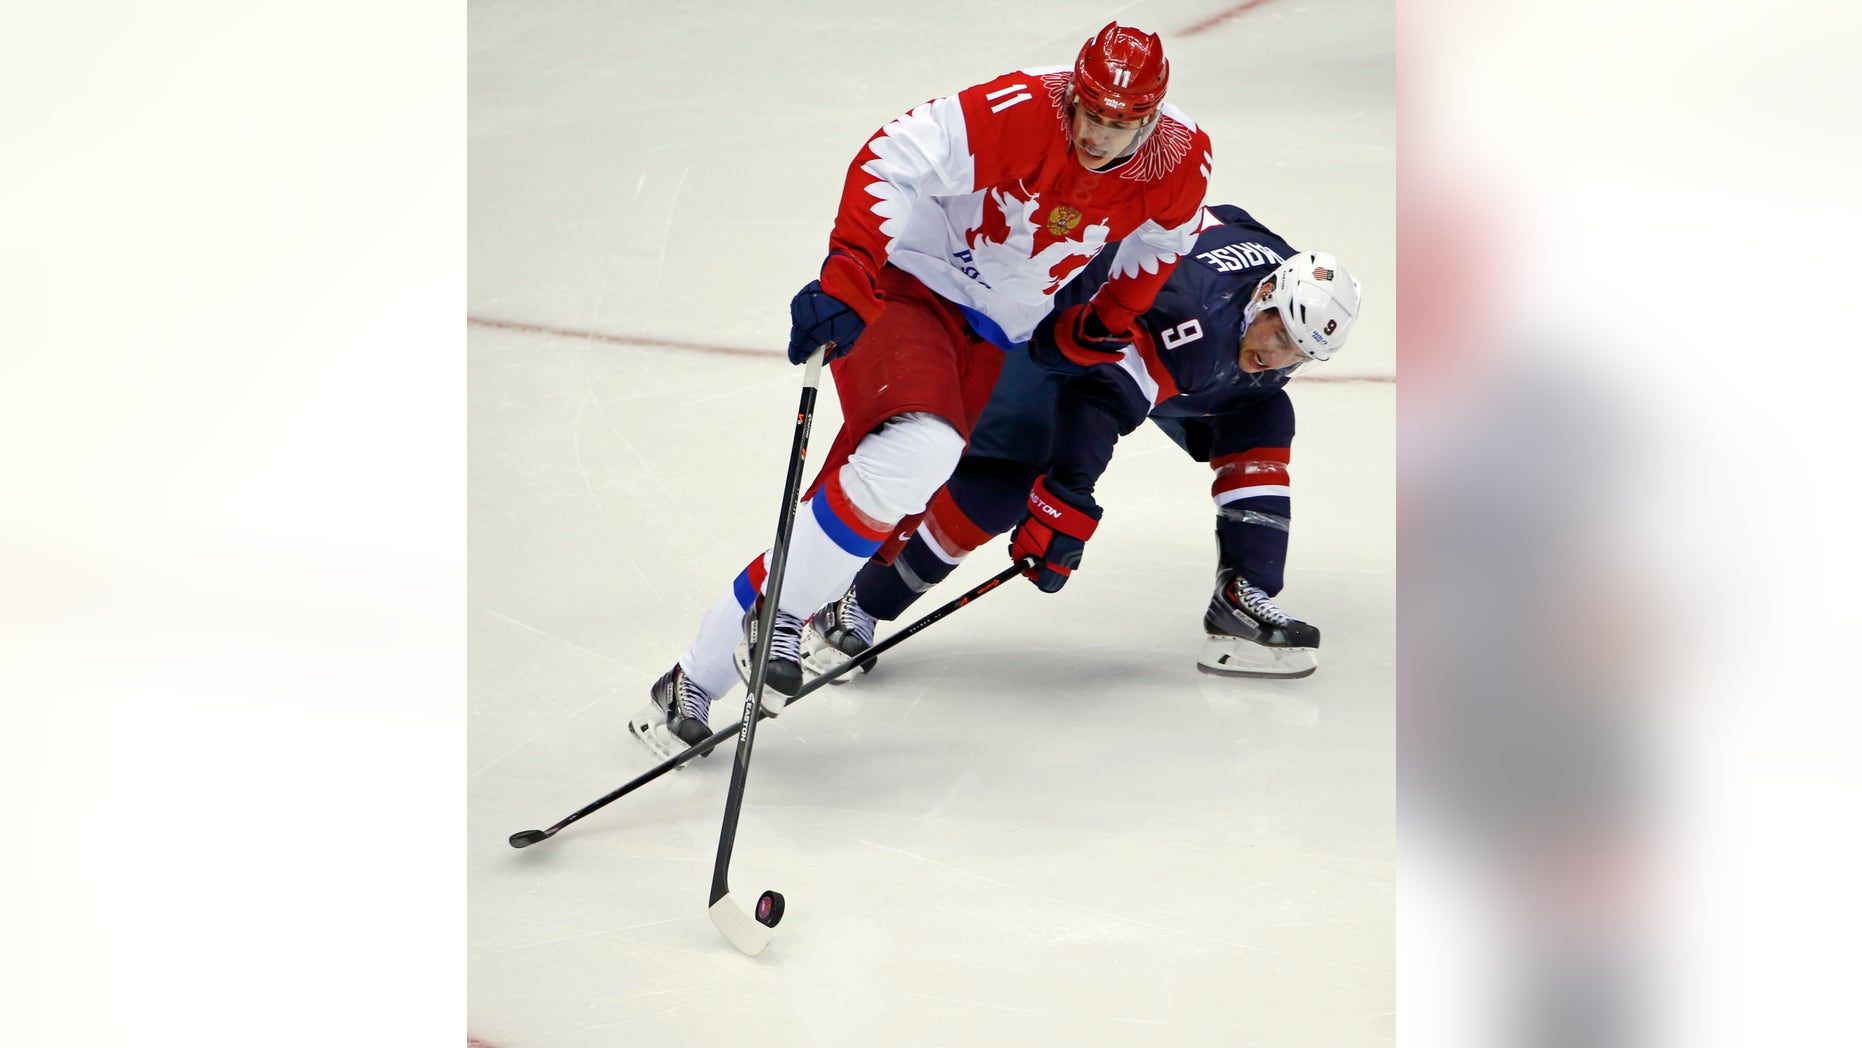 Feb. 15, 2014: Russia forward Yevgeni Malkin and USA forward Zach Parise battle for the puck in the third period of a men's ice hockey game at the 2014 Winter Olympics in Sochi, Russia.